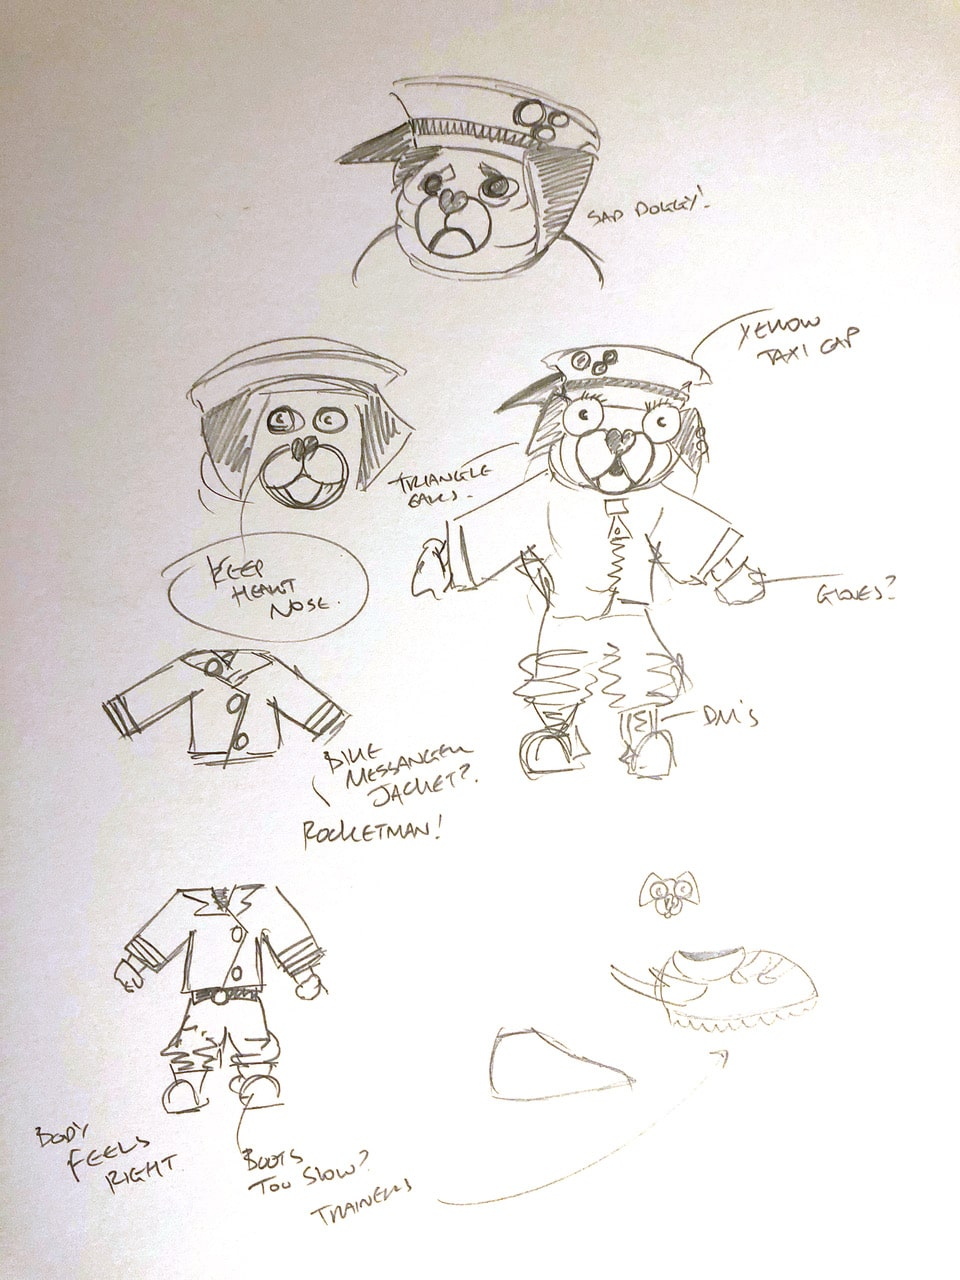 Character design sketches and outfits for Taser